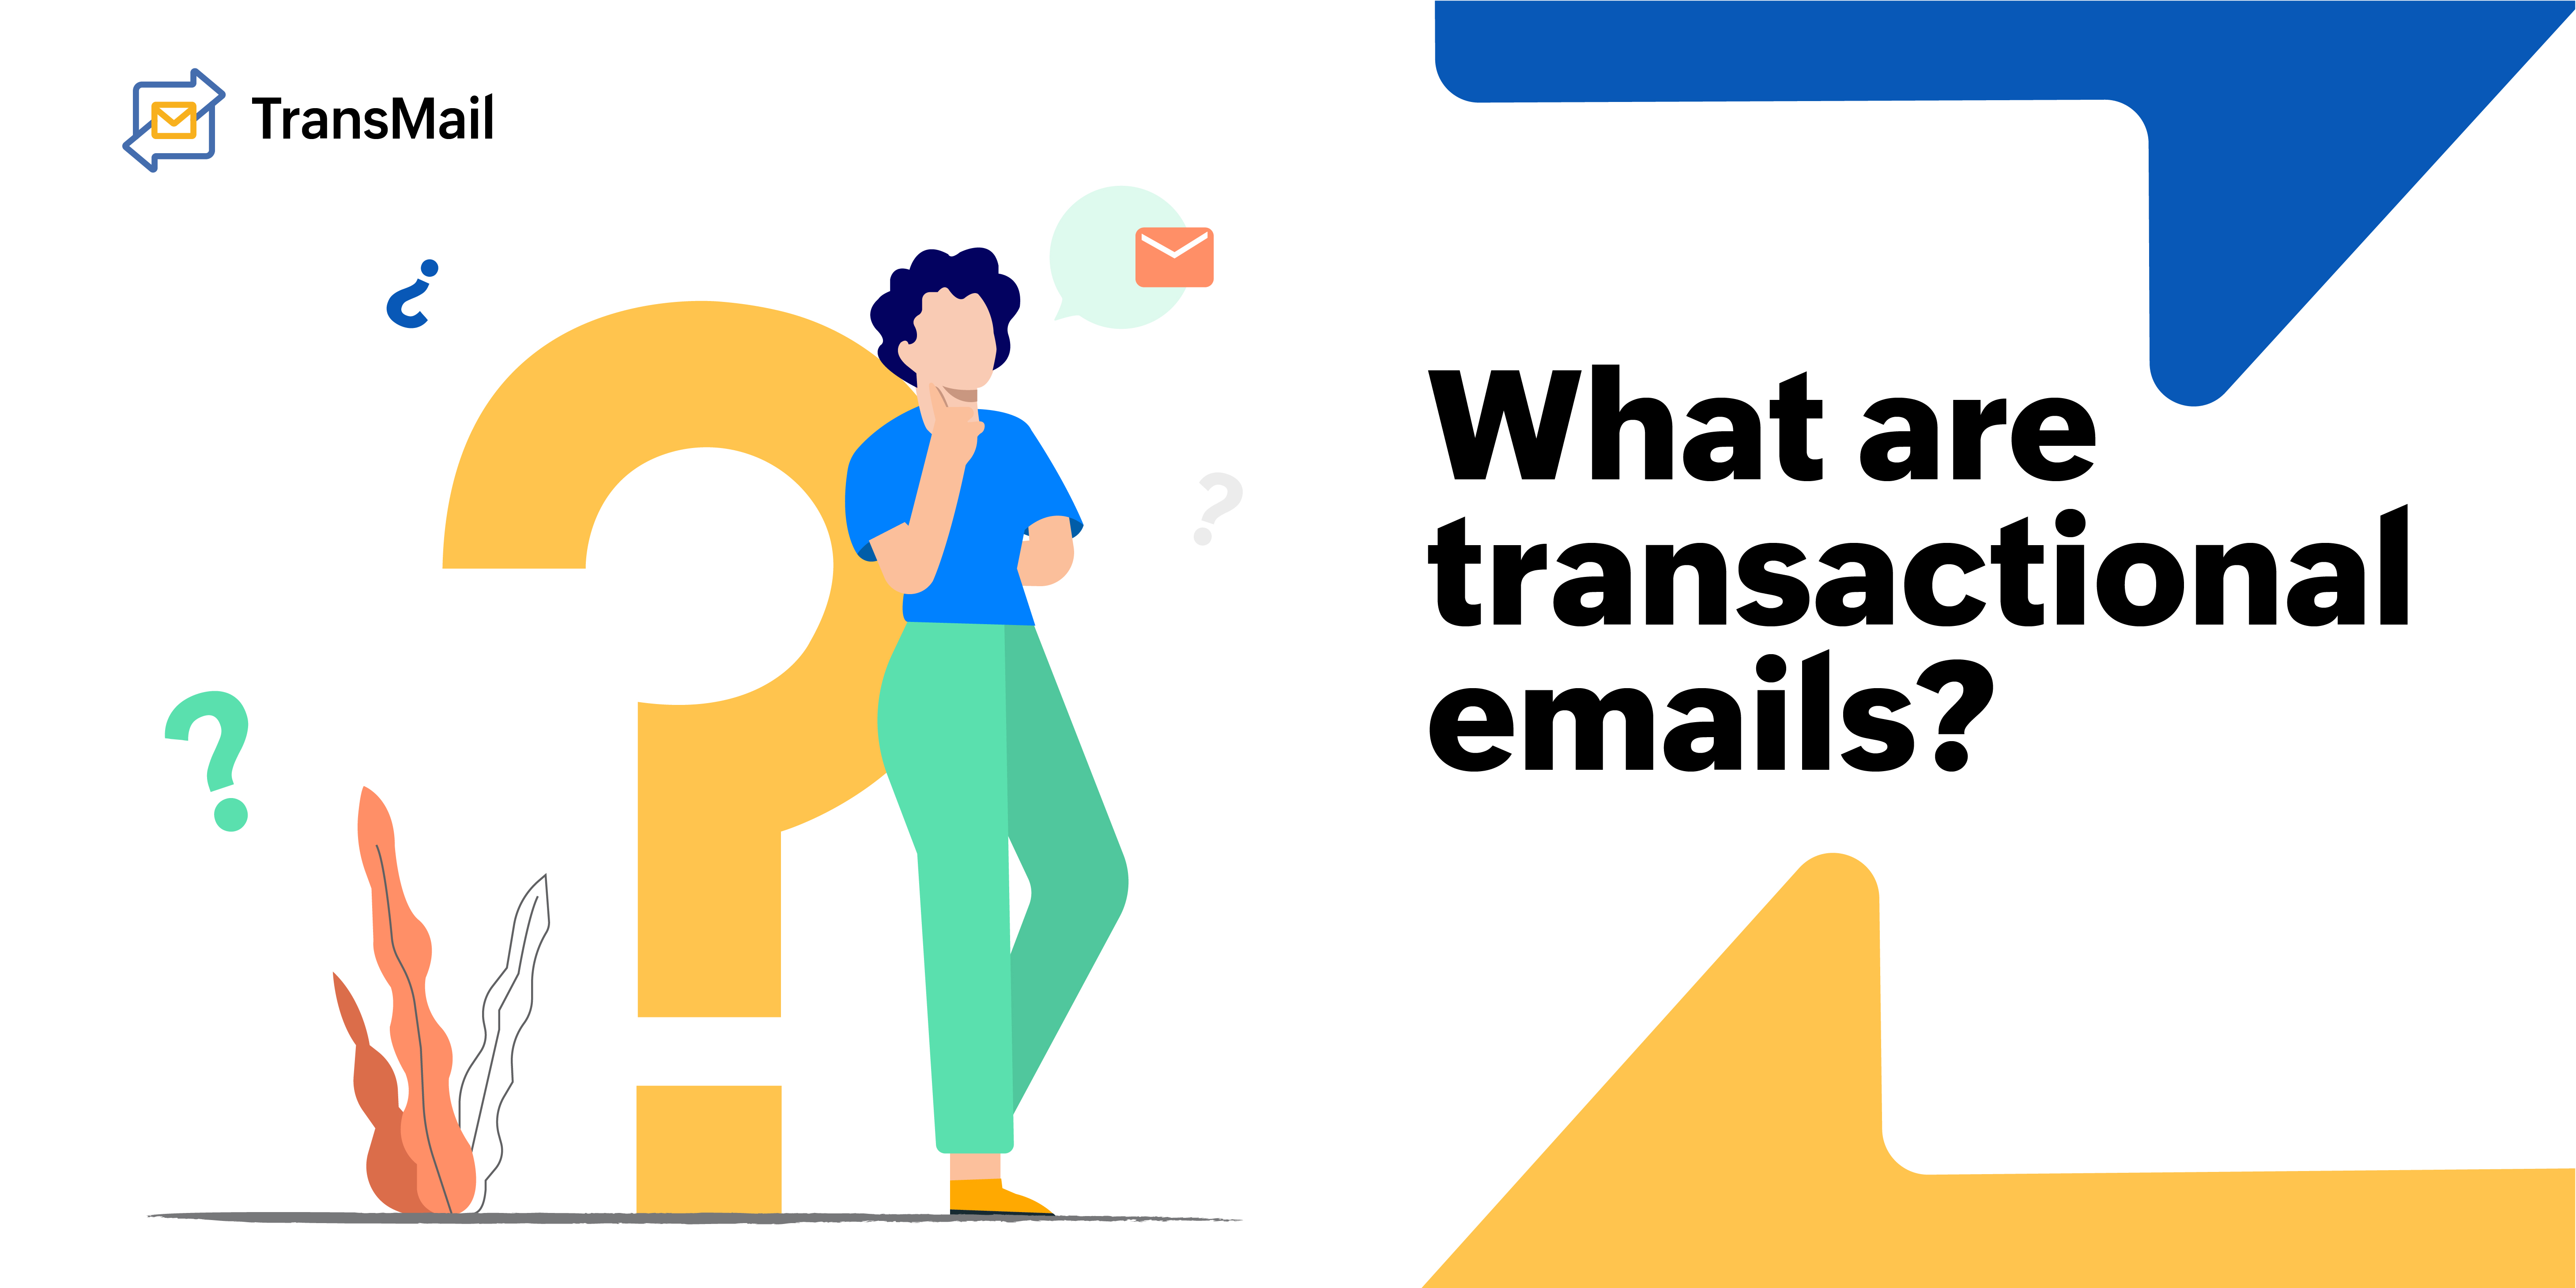 What are transactional emails?